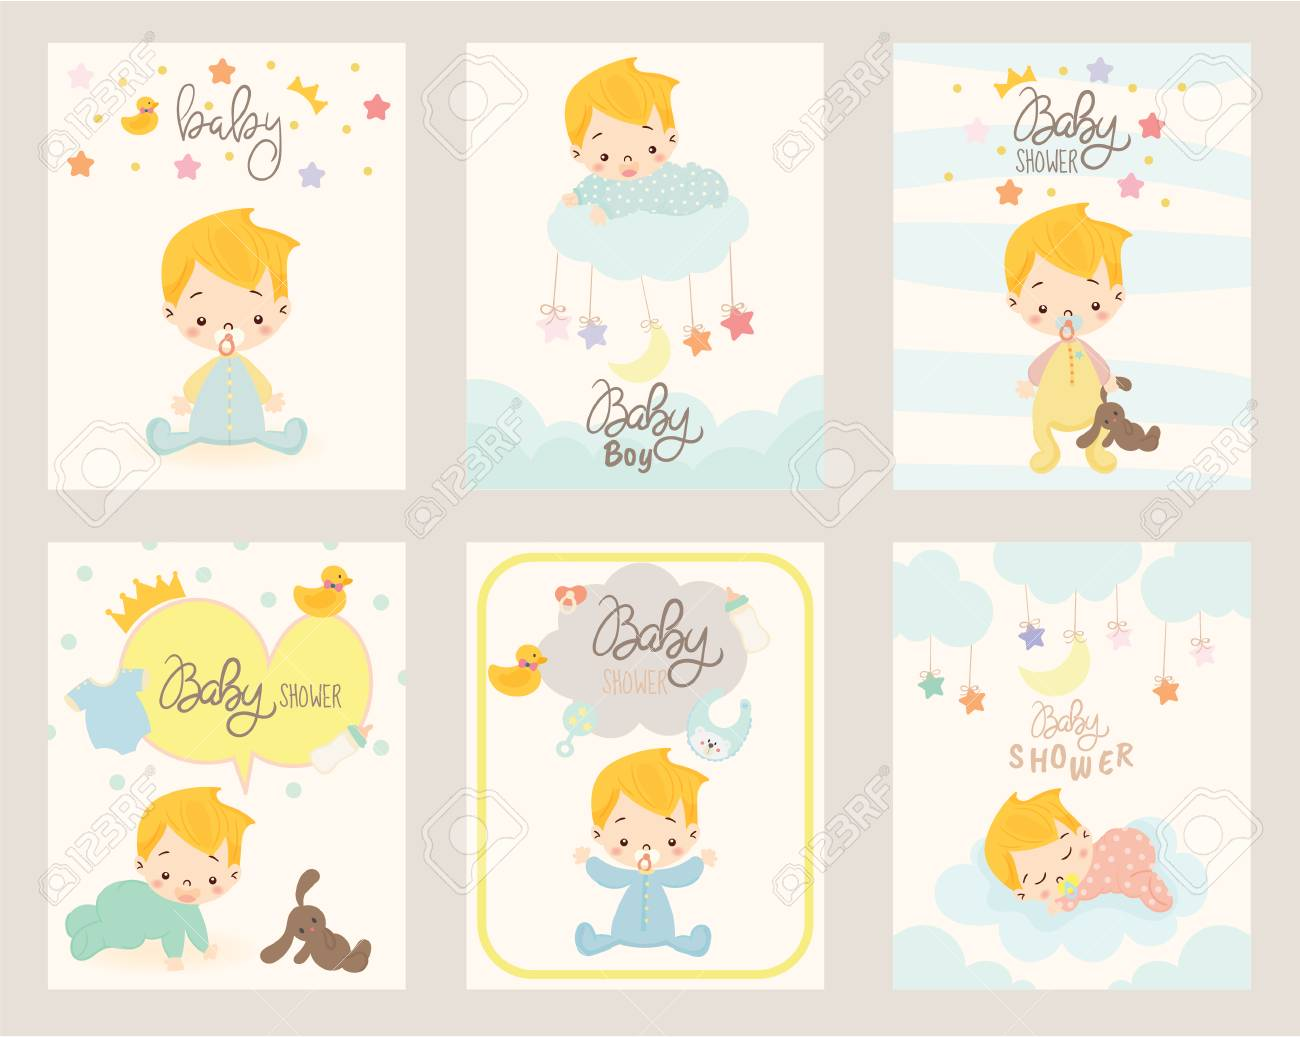 Cute Boy For Baby Shower Invitation Card Design Template